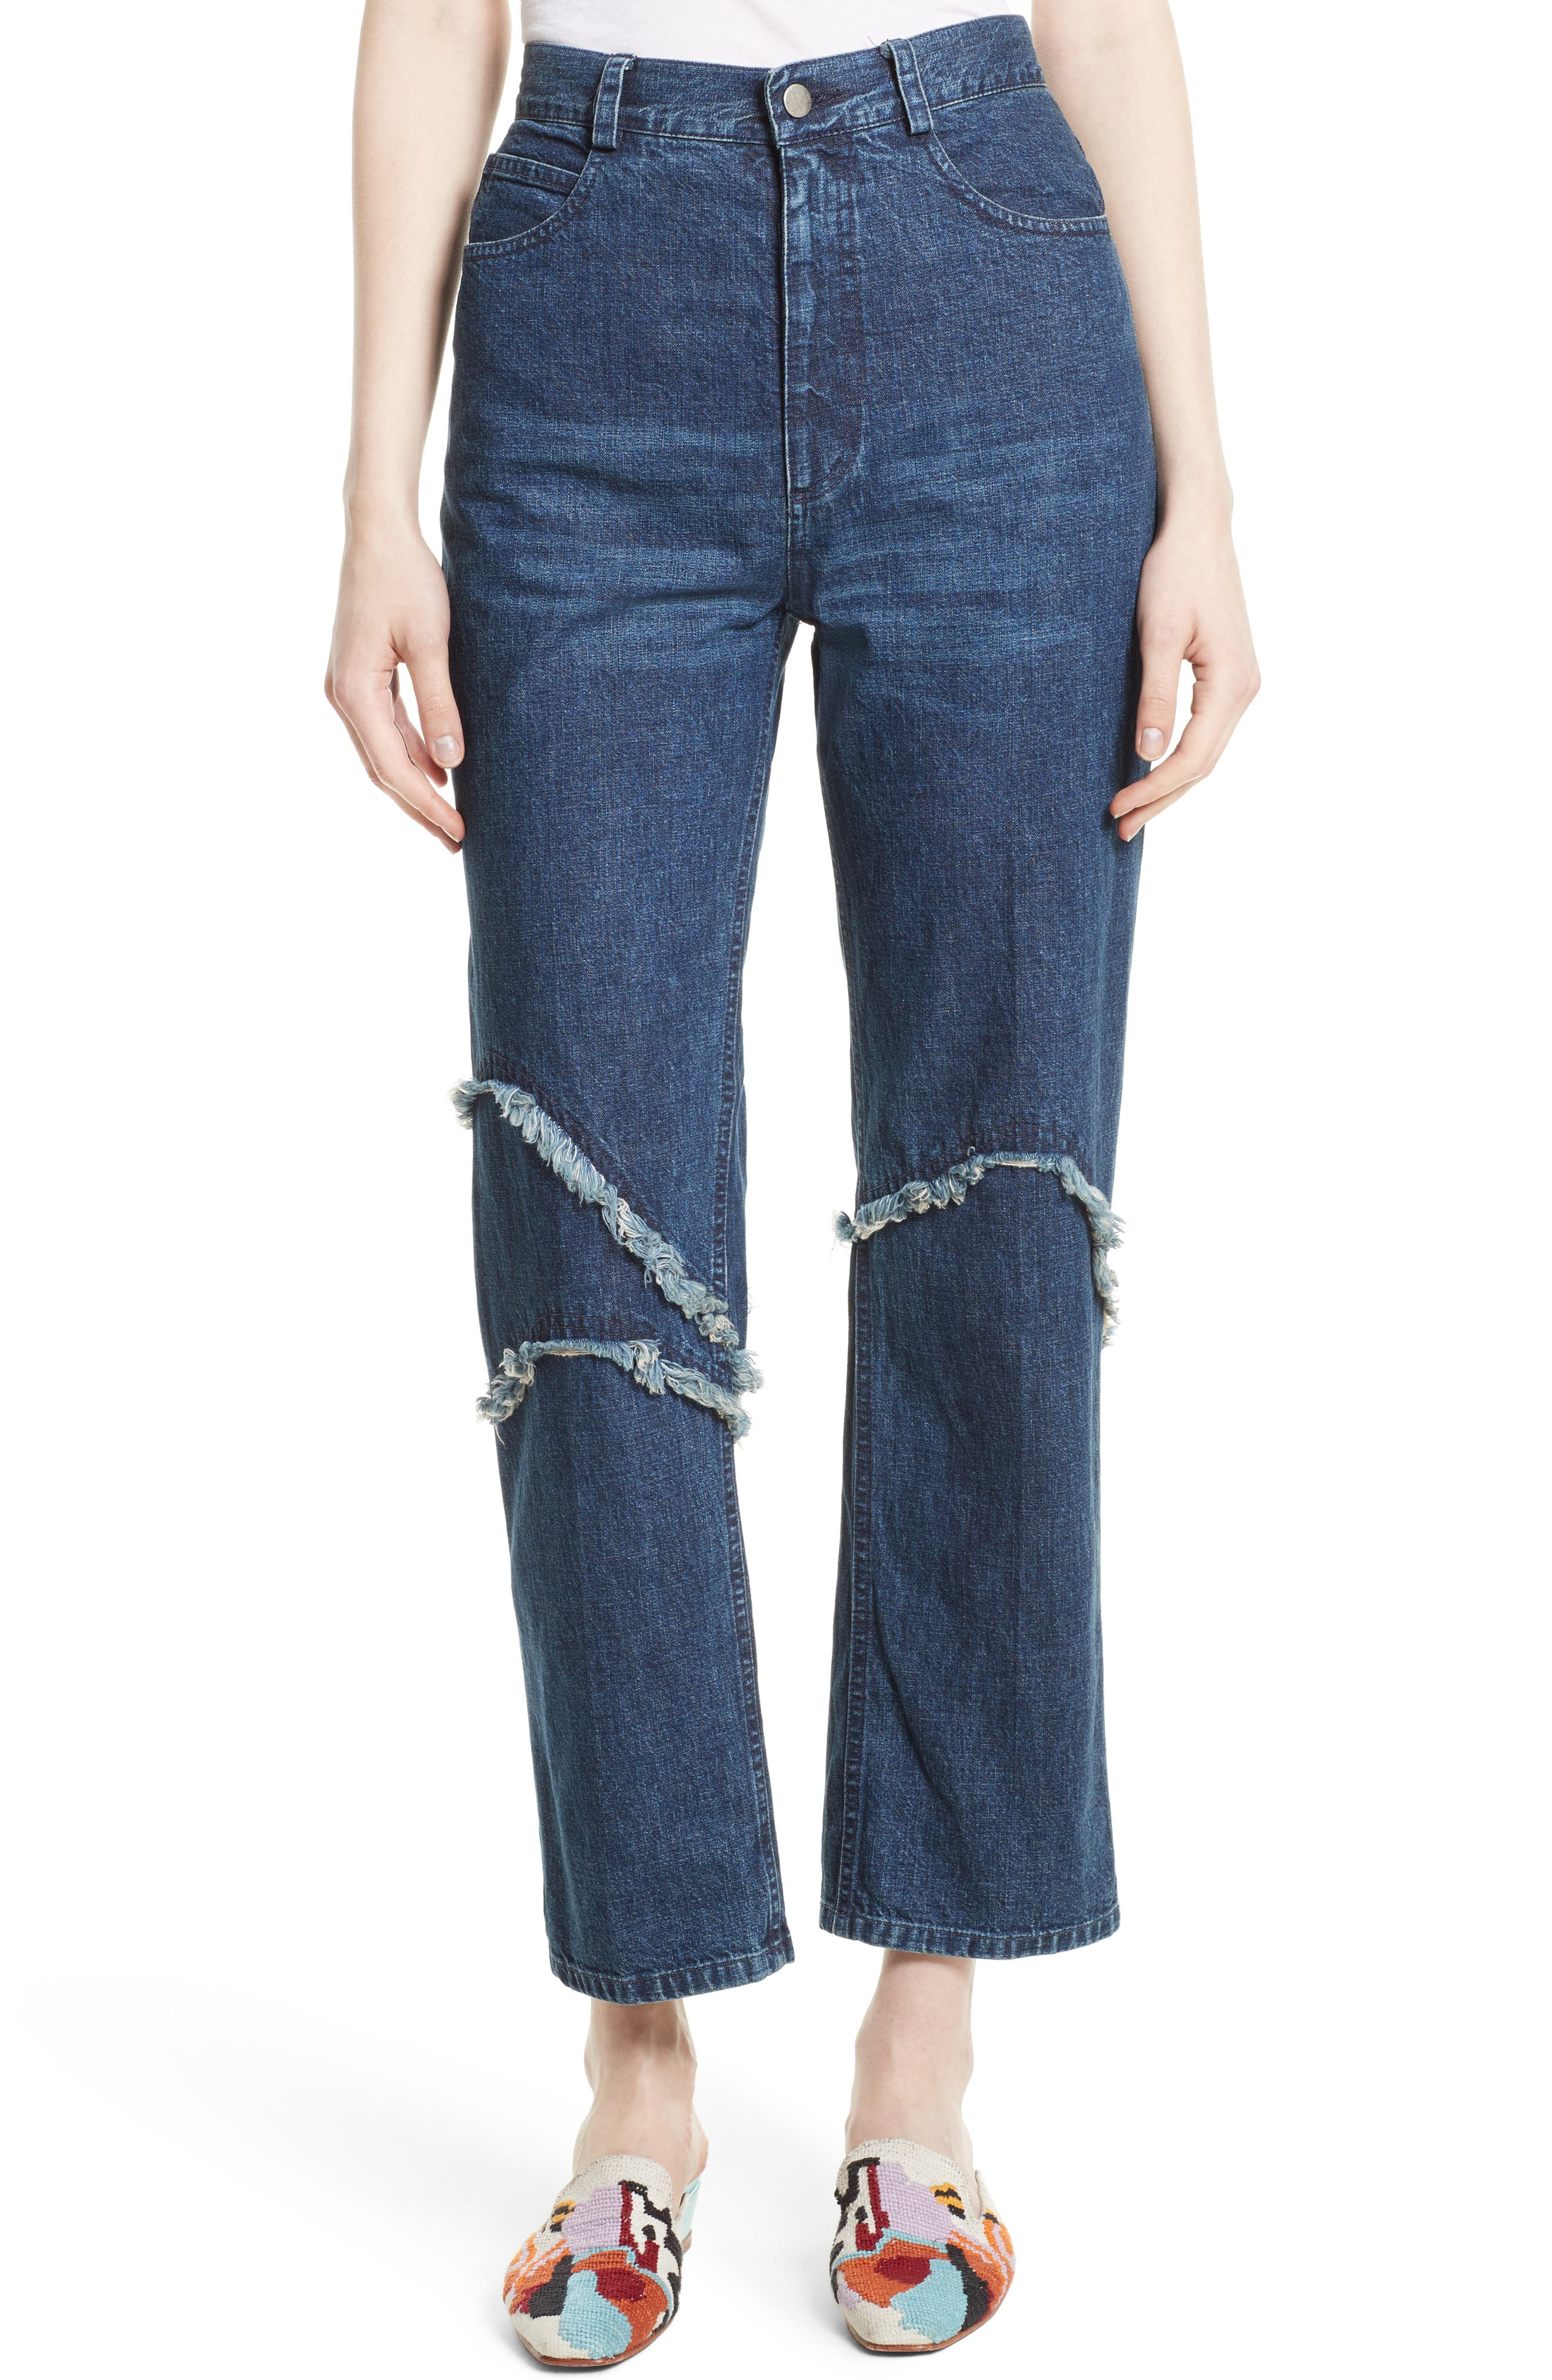 Ticklers Frayed High Waist Crop Jeans,                         Main,                         color, Classic Indigo